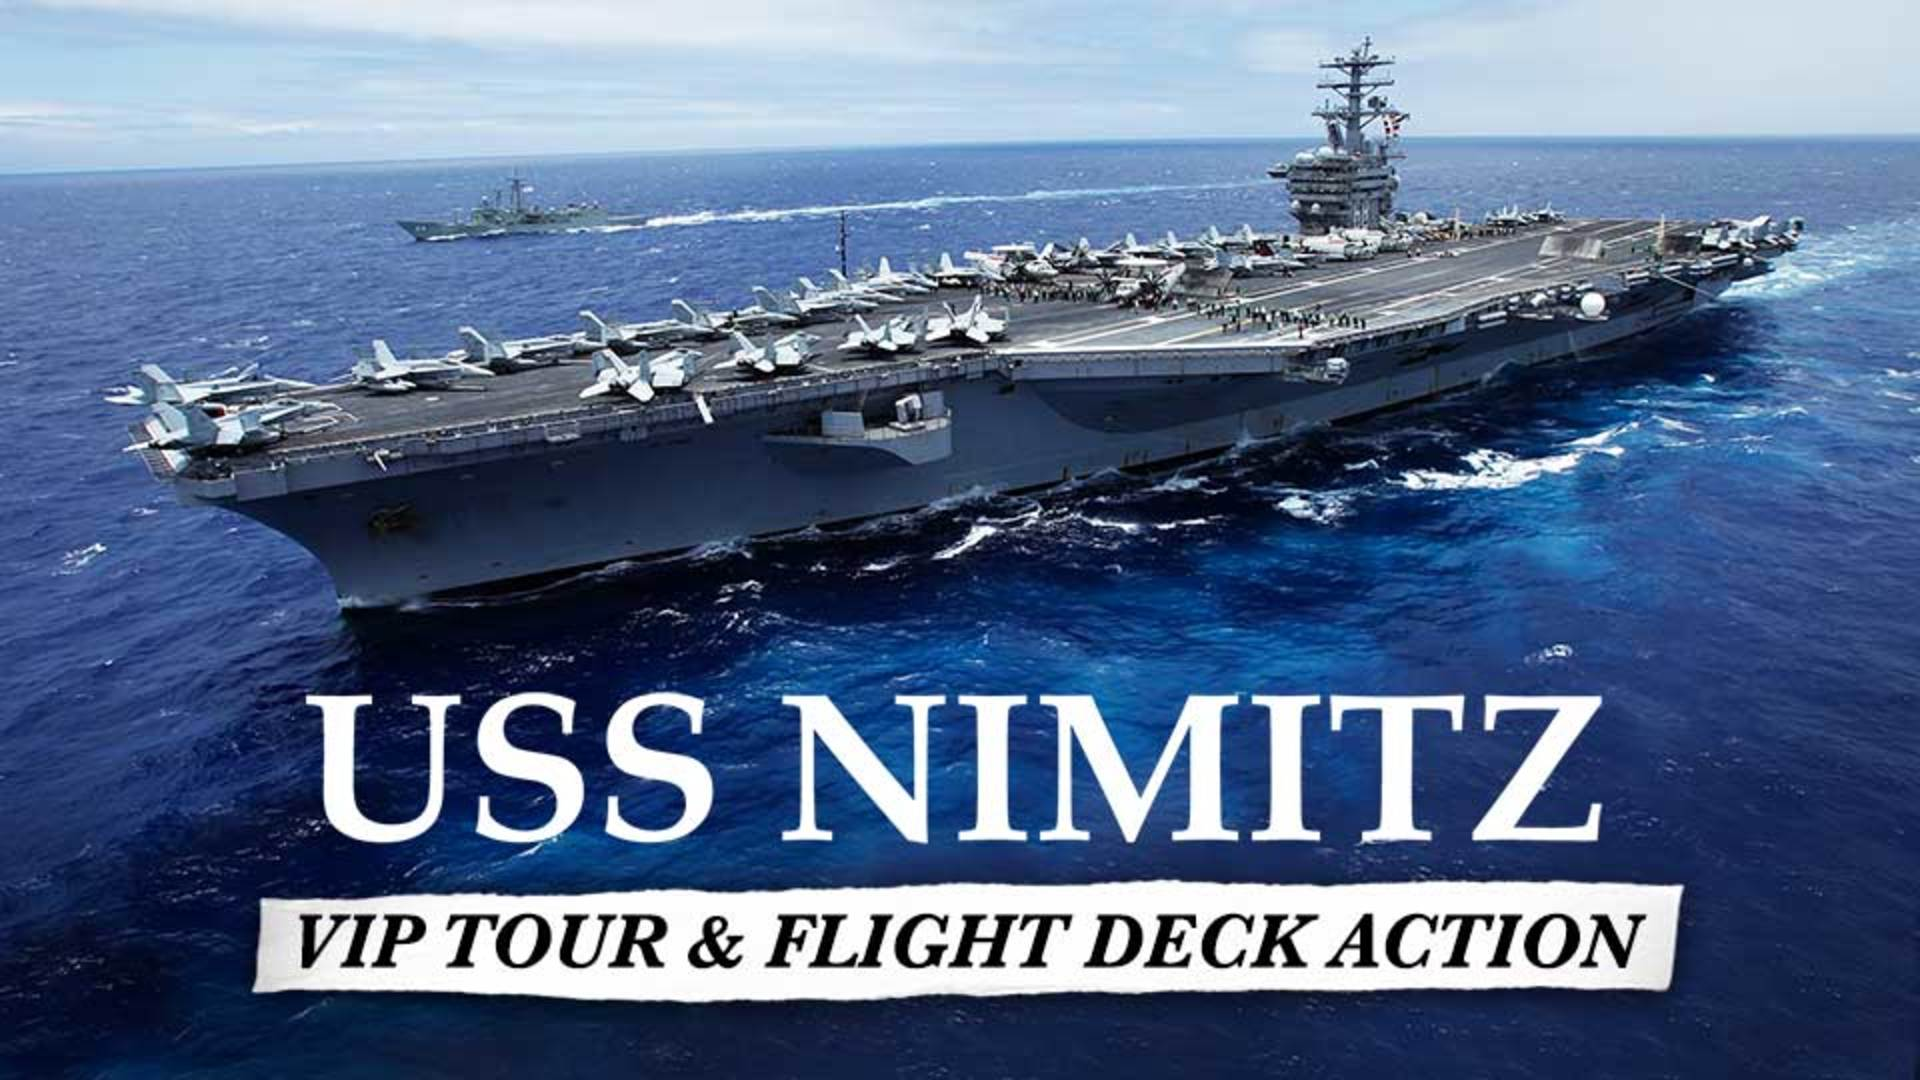 Tour the USS Nimitz - VIP Tour & Flight Deck Action -